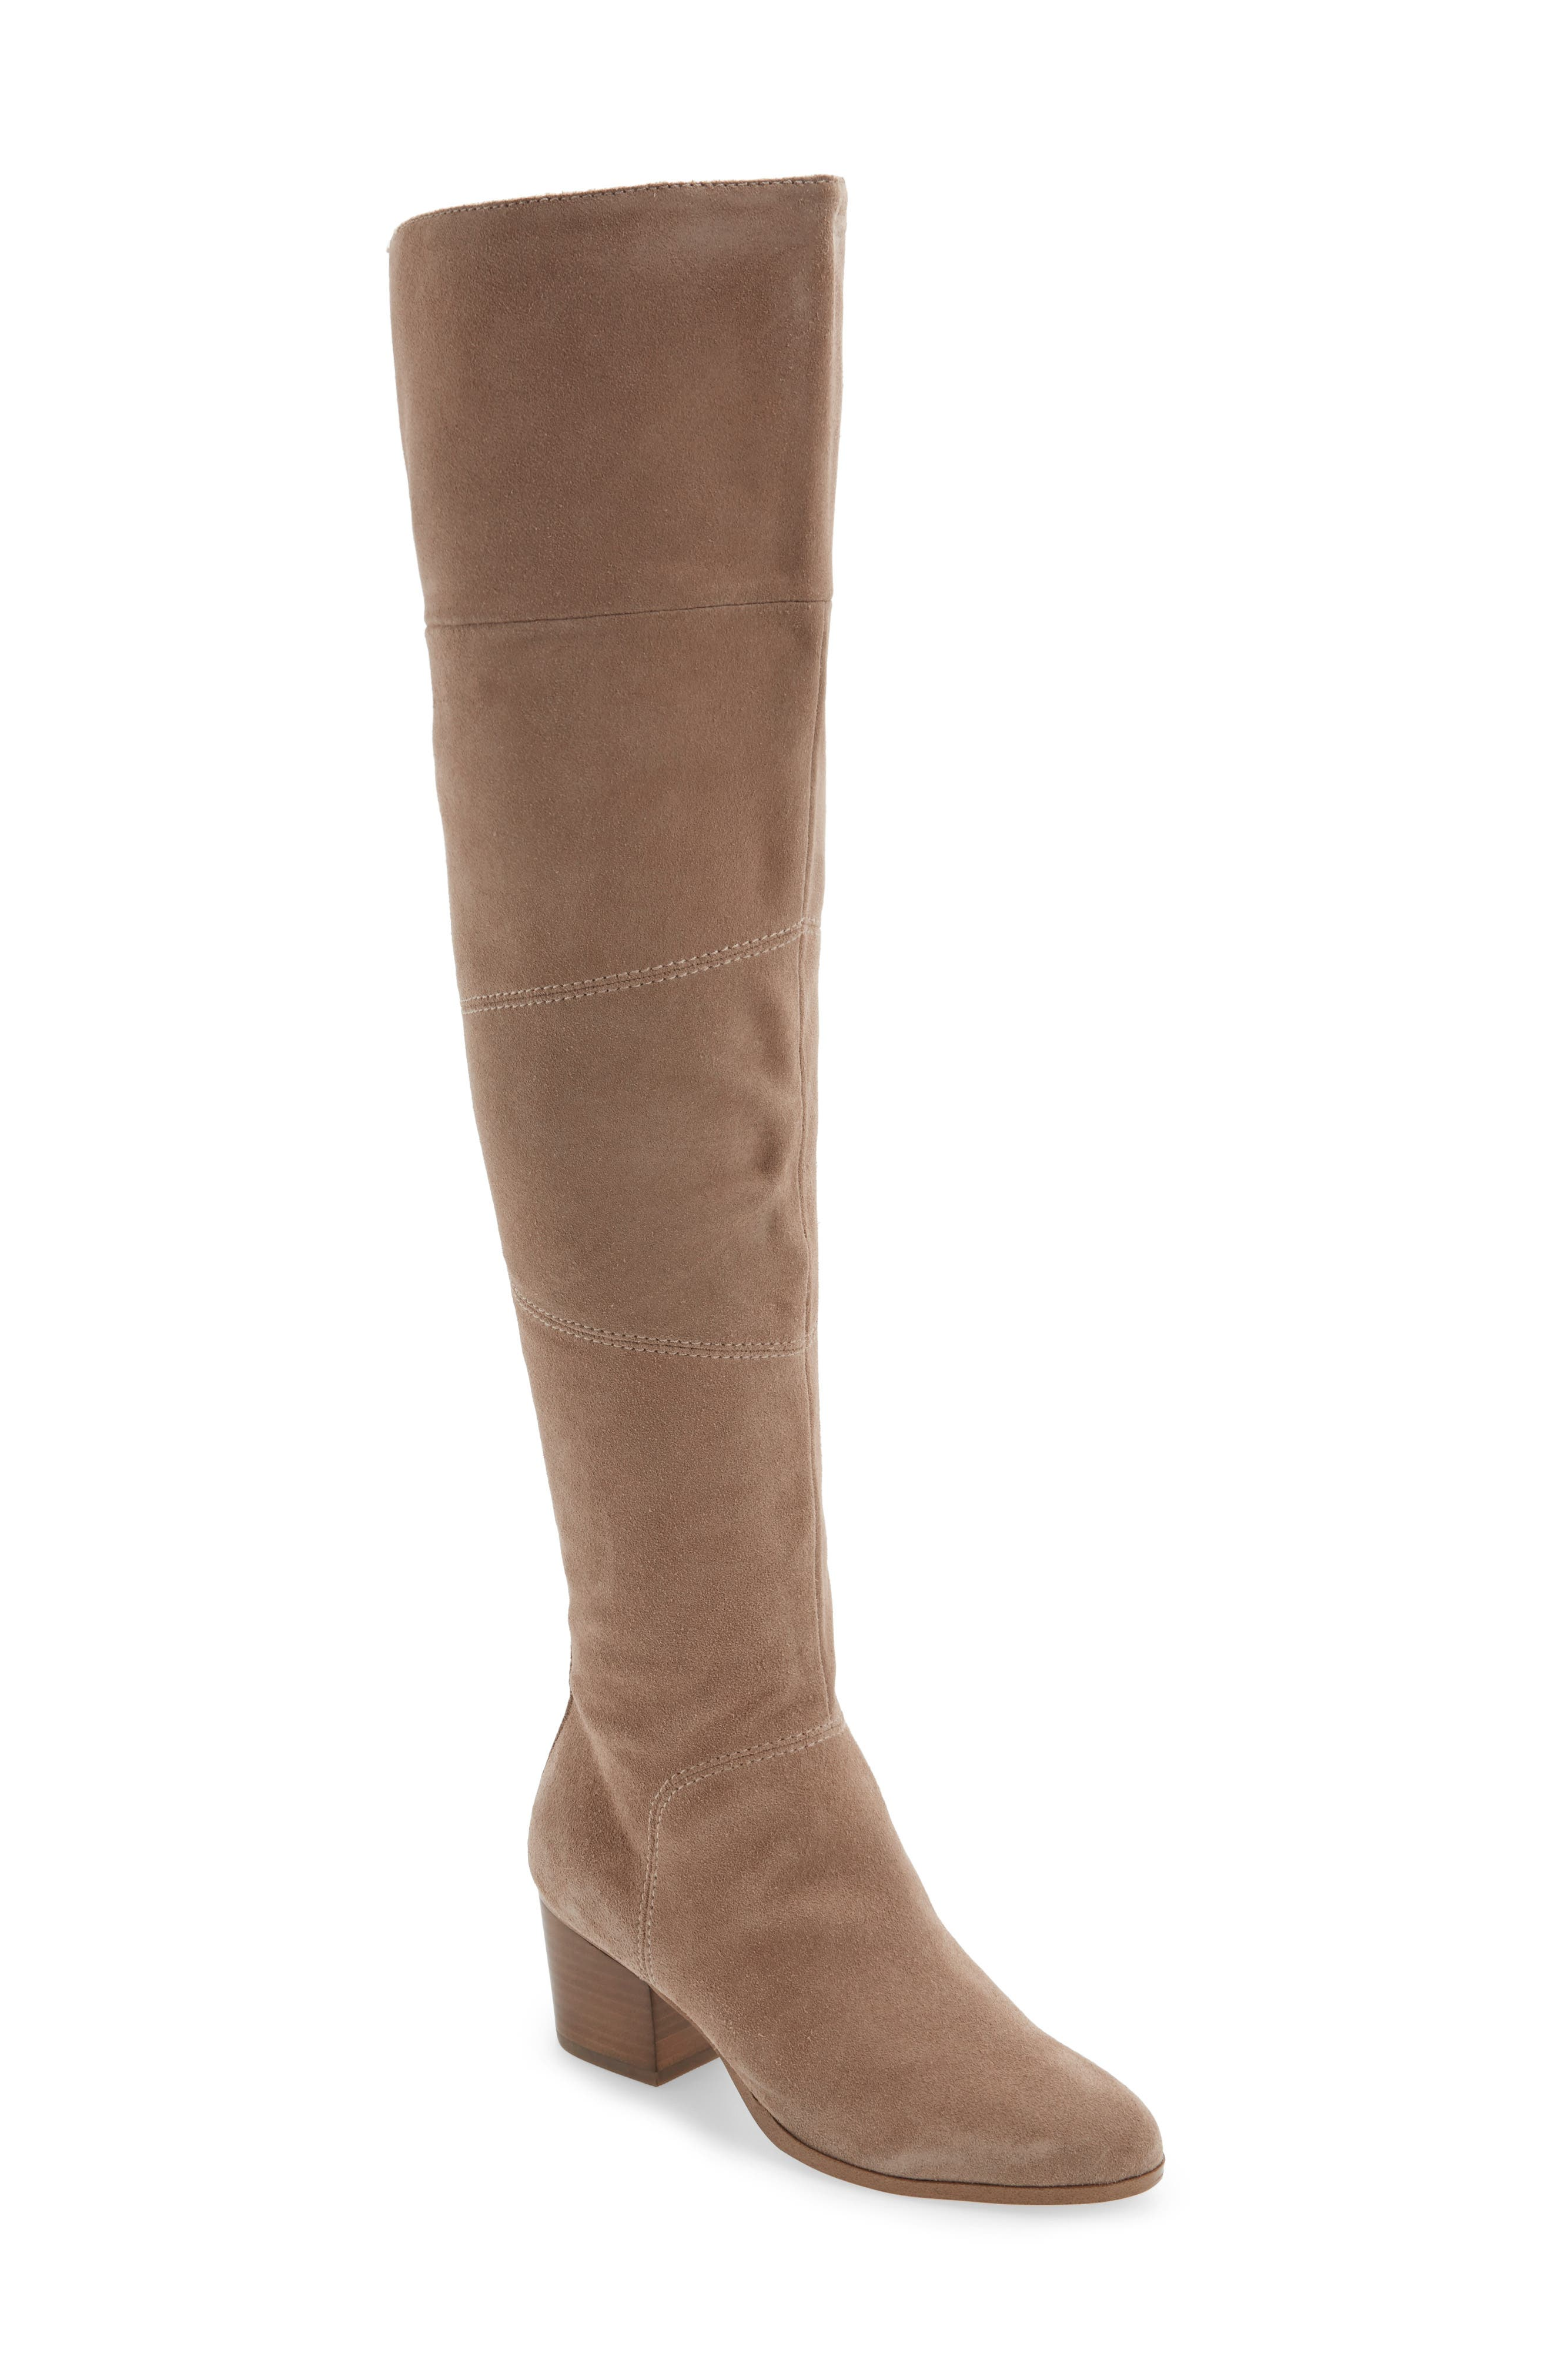 Melbourne Over the Knee Boot,                             Main thumbnail 1, color,                             Night Taupe Suede